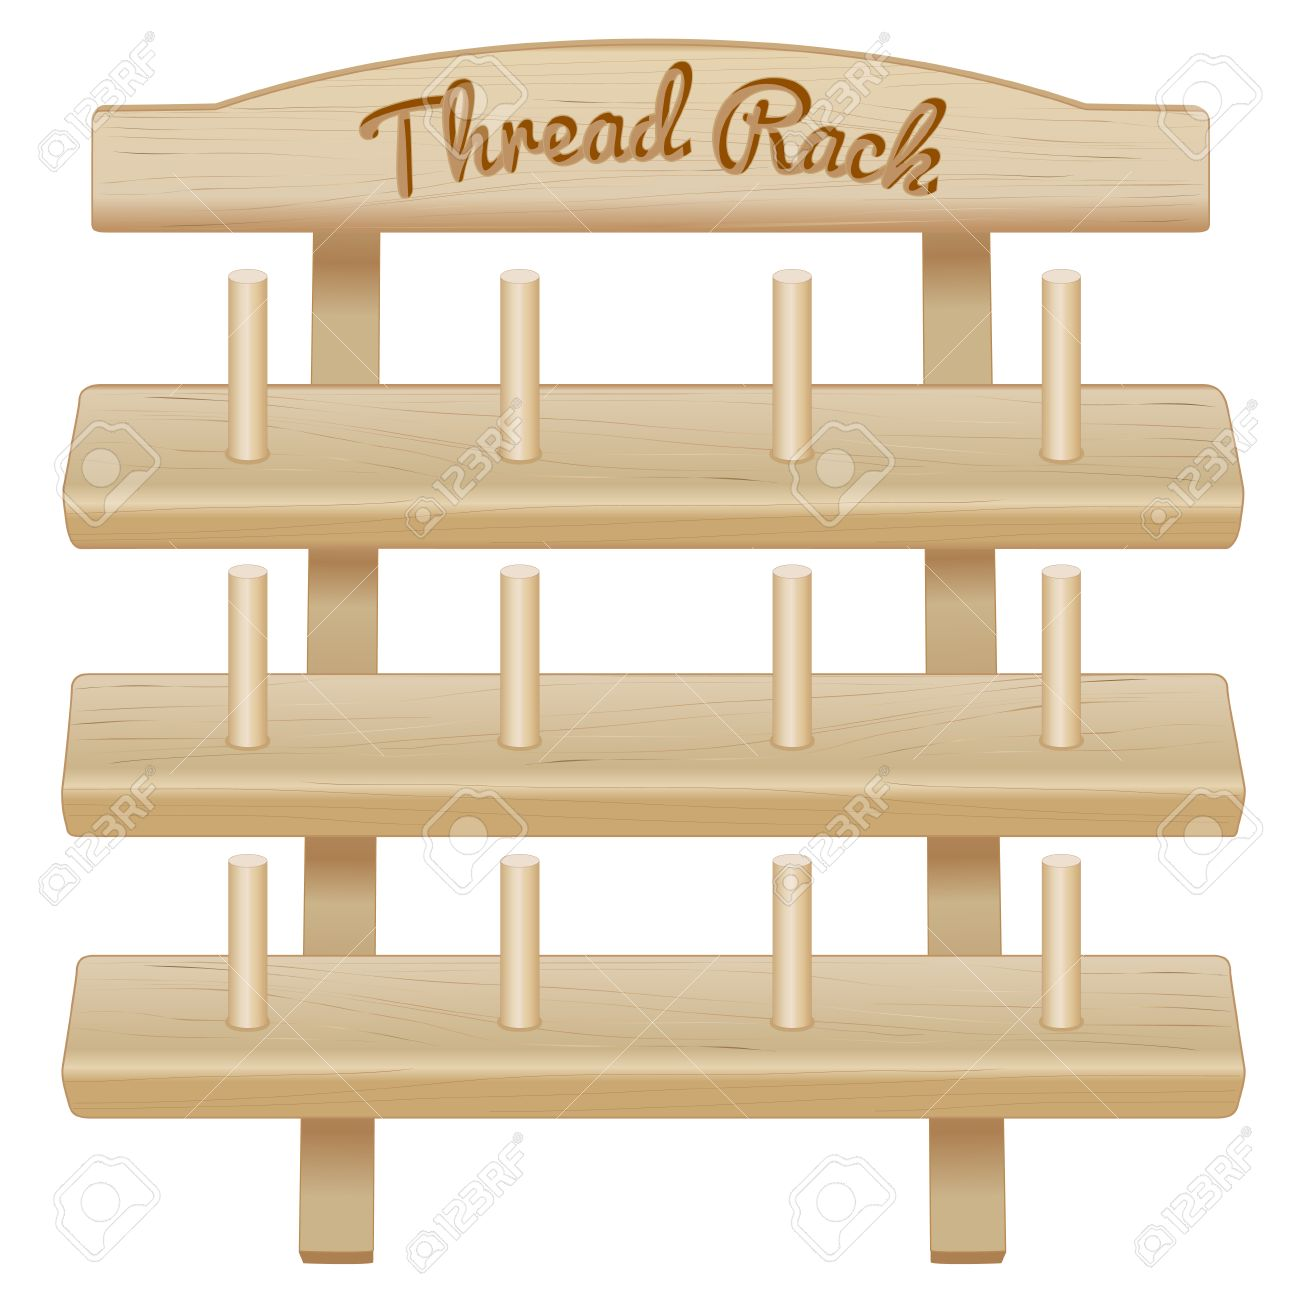 Charmant Wood Thread Spool Storage Rack, Engraved Text, Three Pine Shelves With Pegs  For Sewing